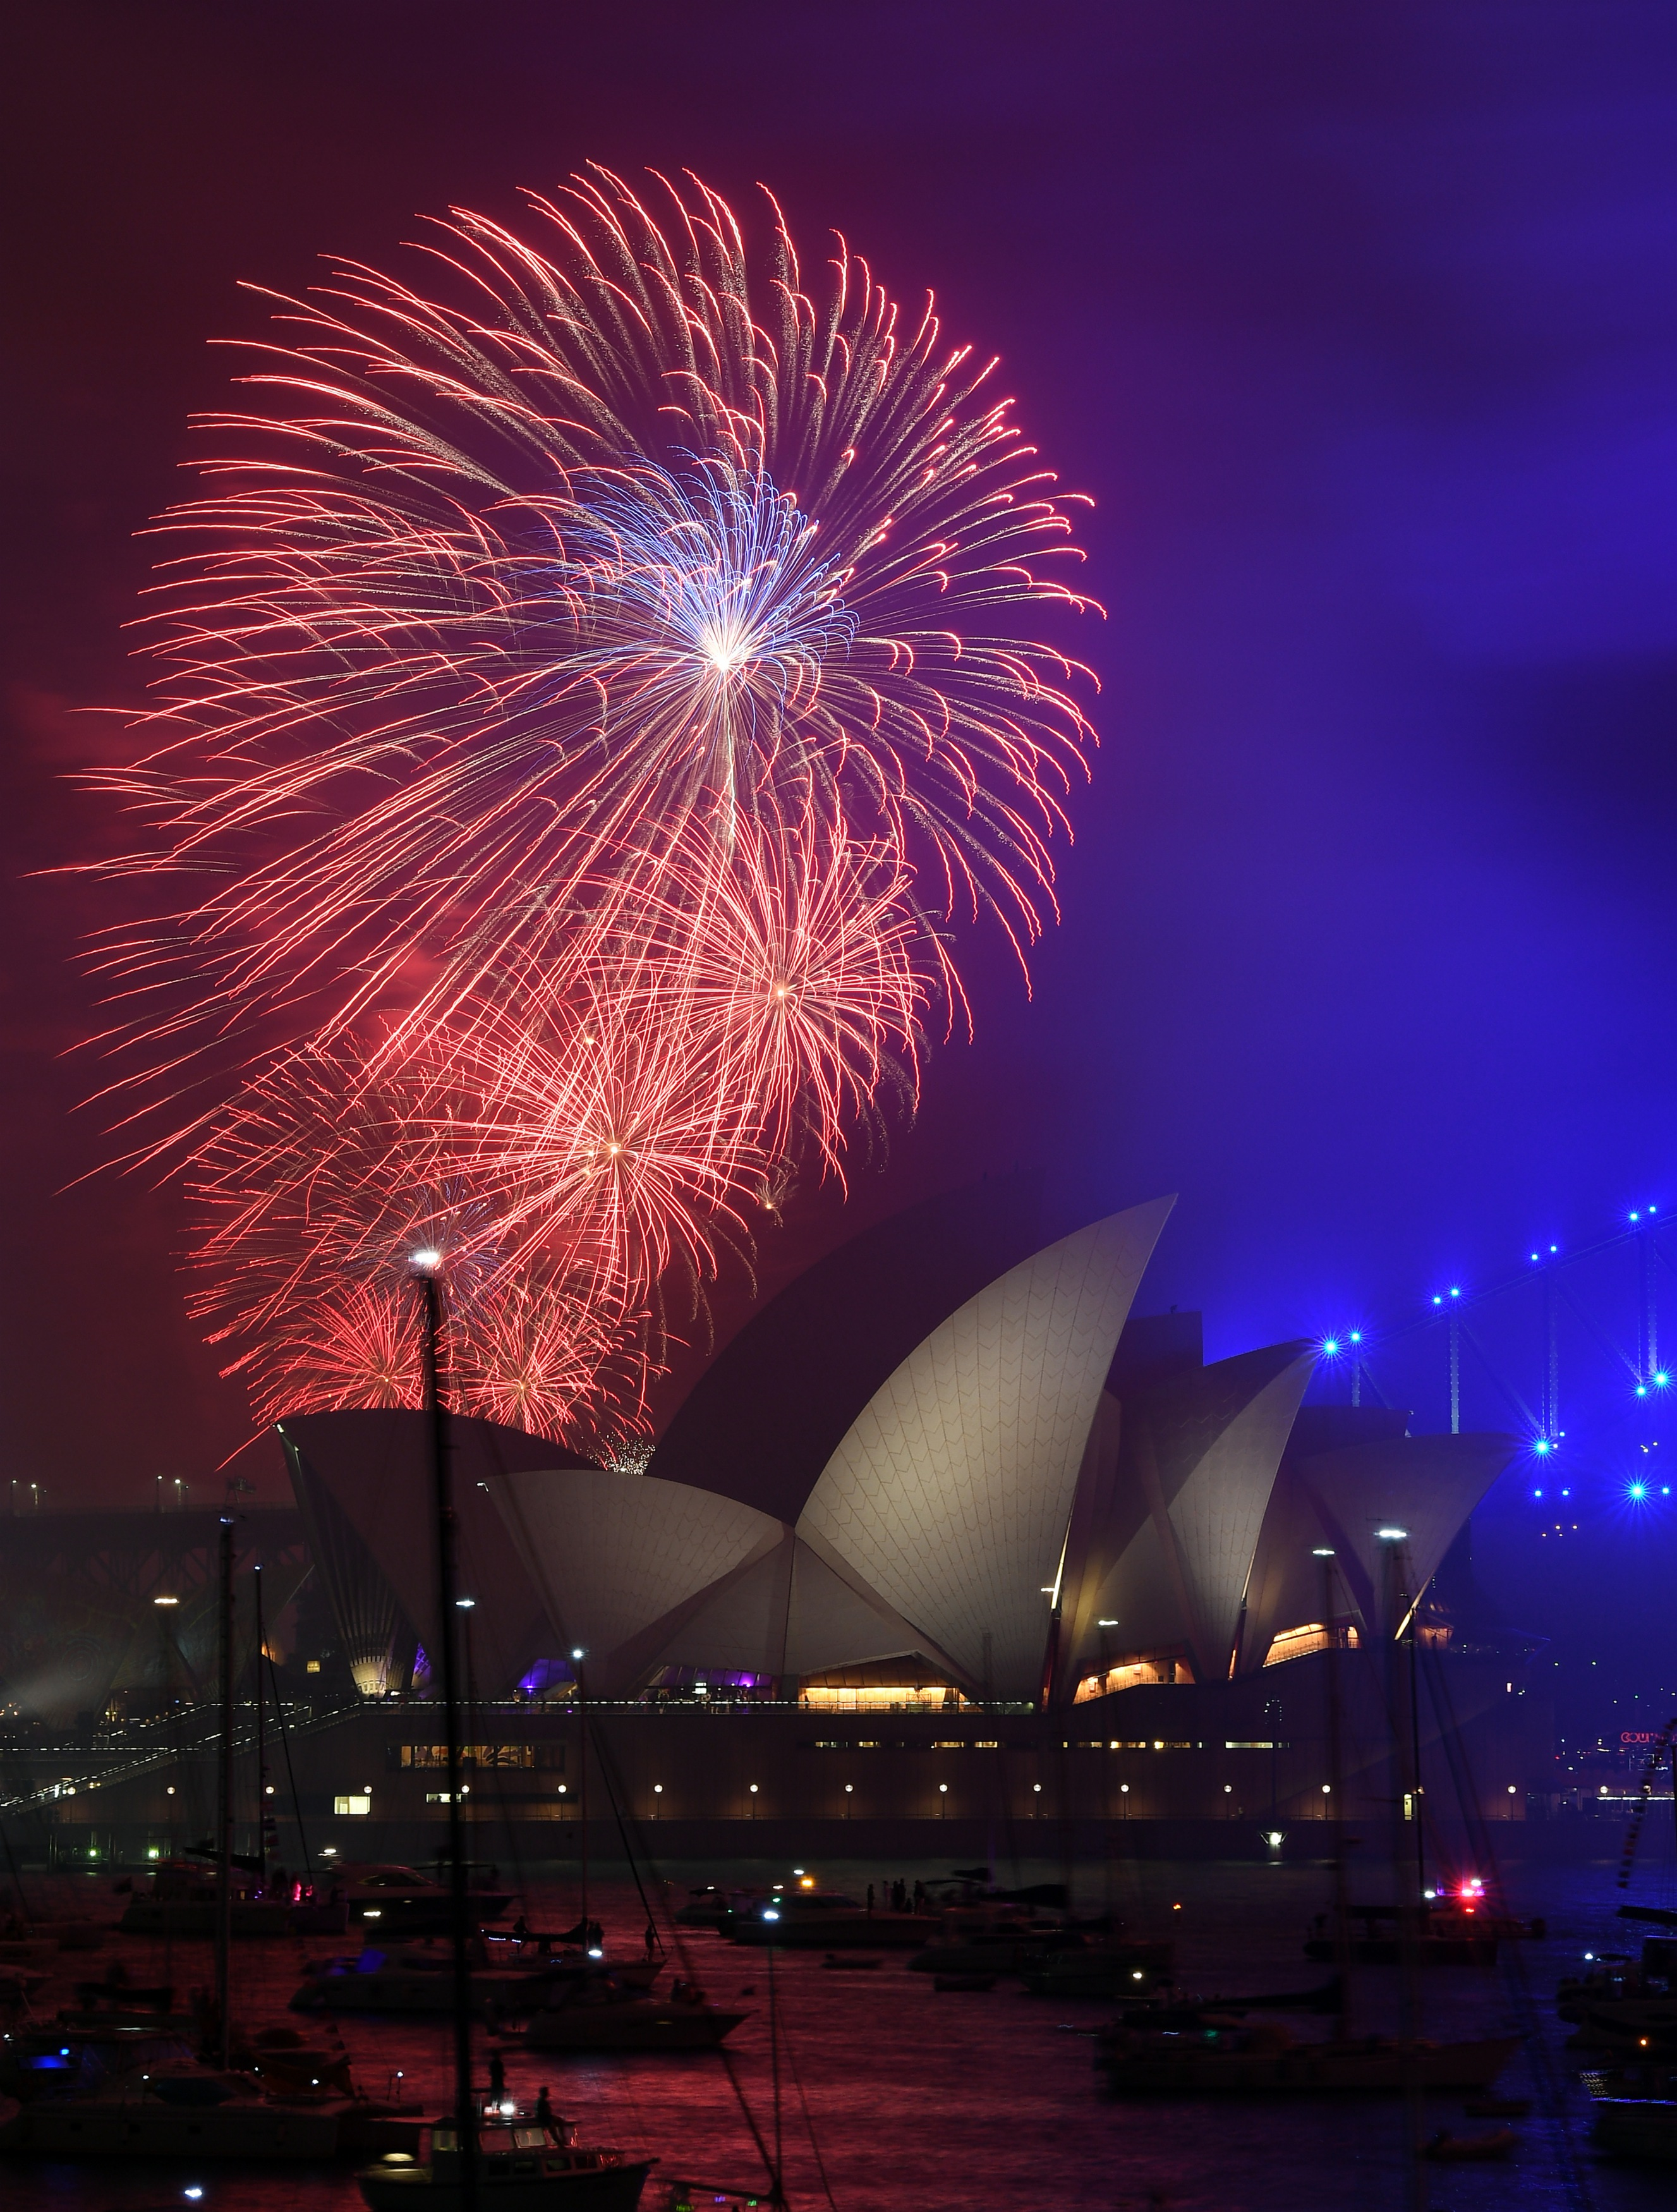 One of the first countries to welcome 2018, fireworks fill the sky over the Opera House in Sydney, Australia. (Image Credit: Saeed Khan/AFP Photo)